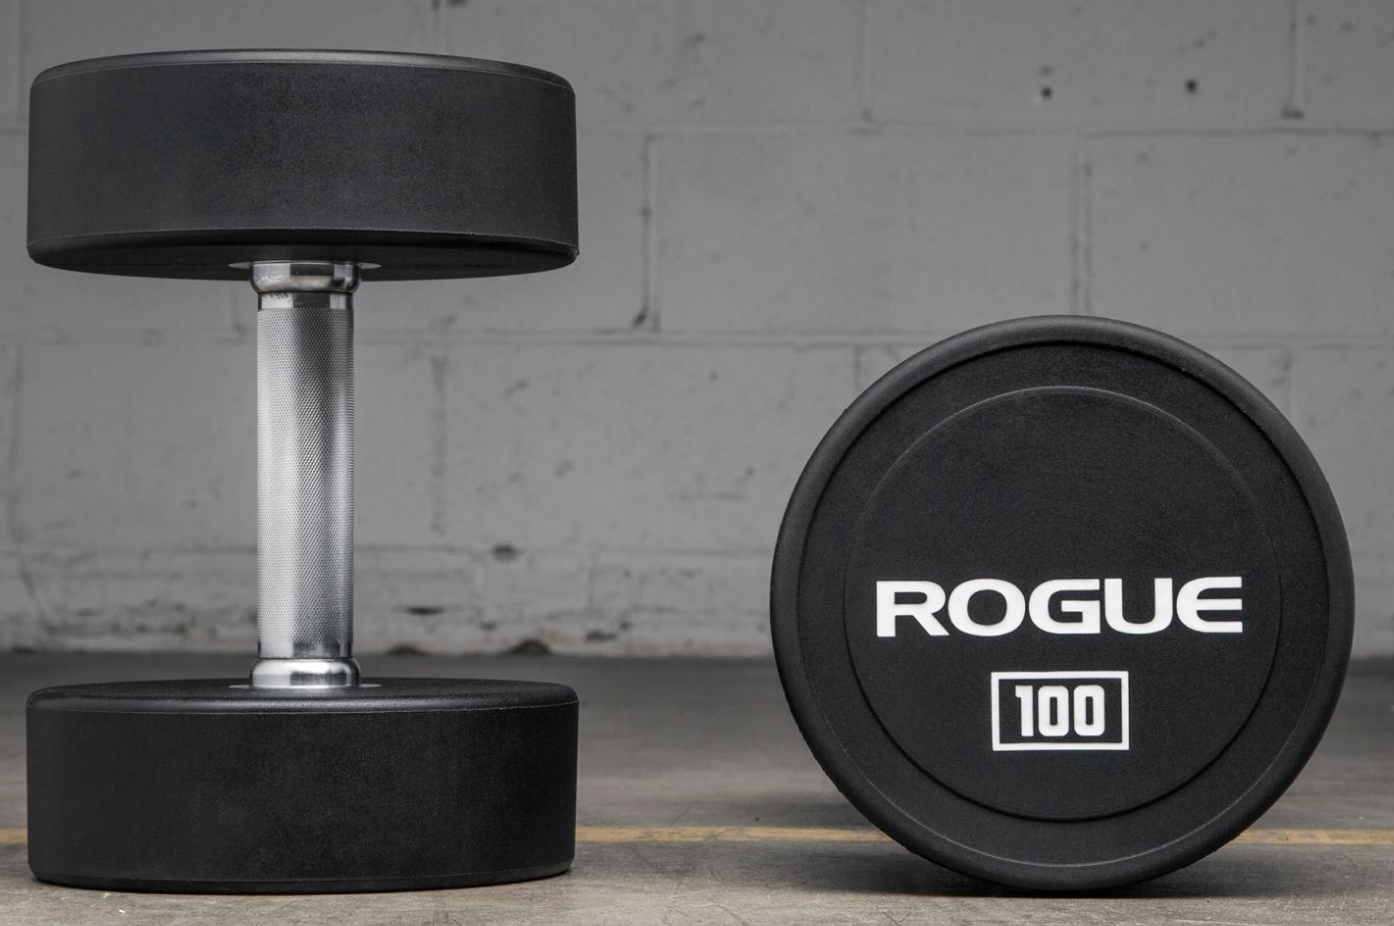 """Rogue Urethane Dumbbells - Sold in pairs and available in 5LB increments up to 150LB. As an alternative to traditional rubberized bells, this design features solid steel heads with a durable, shock-absorbent urethane plating, fully over-molded to the center. The heads are welded to a 6"""" straight hardened chrome handle to create a solid, single-piece dumbbell that moves fluidly and compactly and won't damage your flooring on a drop. Weight Increments: 5LB – 150LBEach precision-machined handle on Rogue's Urethane Dumbbells is the same 6"""" in length and includes a medium-grade knurling for a firm but comfortable grip. The handle diameter is 31mm for bells up to 45LB and 34mm for bells 50LB and up.The dumbbell heads vary in diameter from 127mm (for 5-15LB sizes) up to 204mm for bells 130LB and up. Each is finished in a distinct black matte with bright, clear increment markings and the Rogue logo in grey print. The combination of the urethane plating and textured finish makes these dumbbells uniquely low-maintenance, looking like new even after long periods of use."""